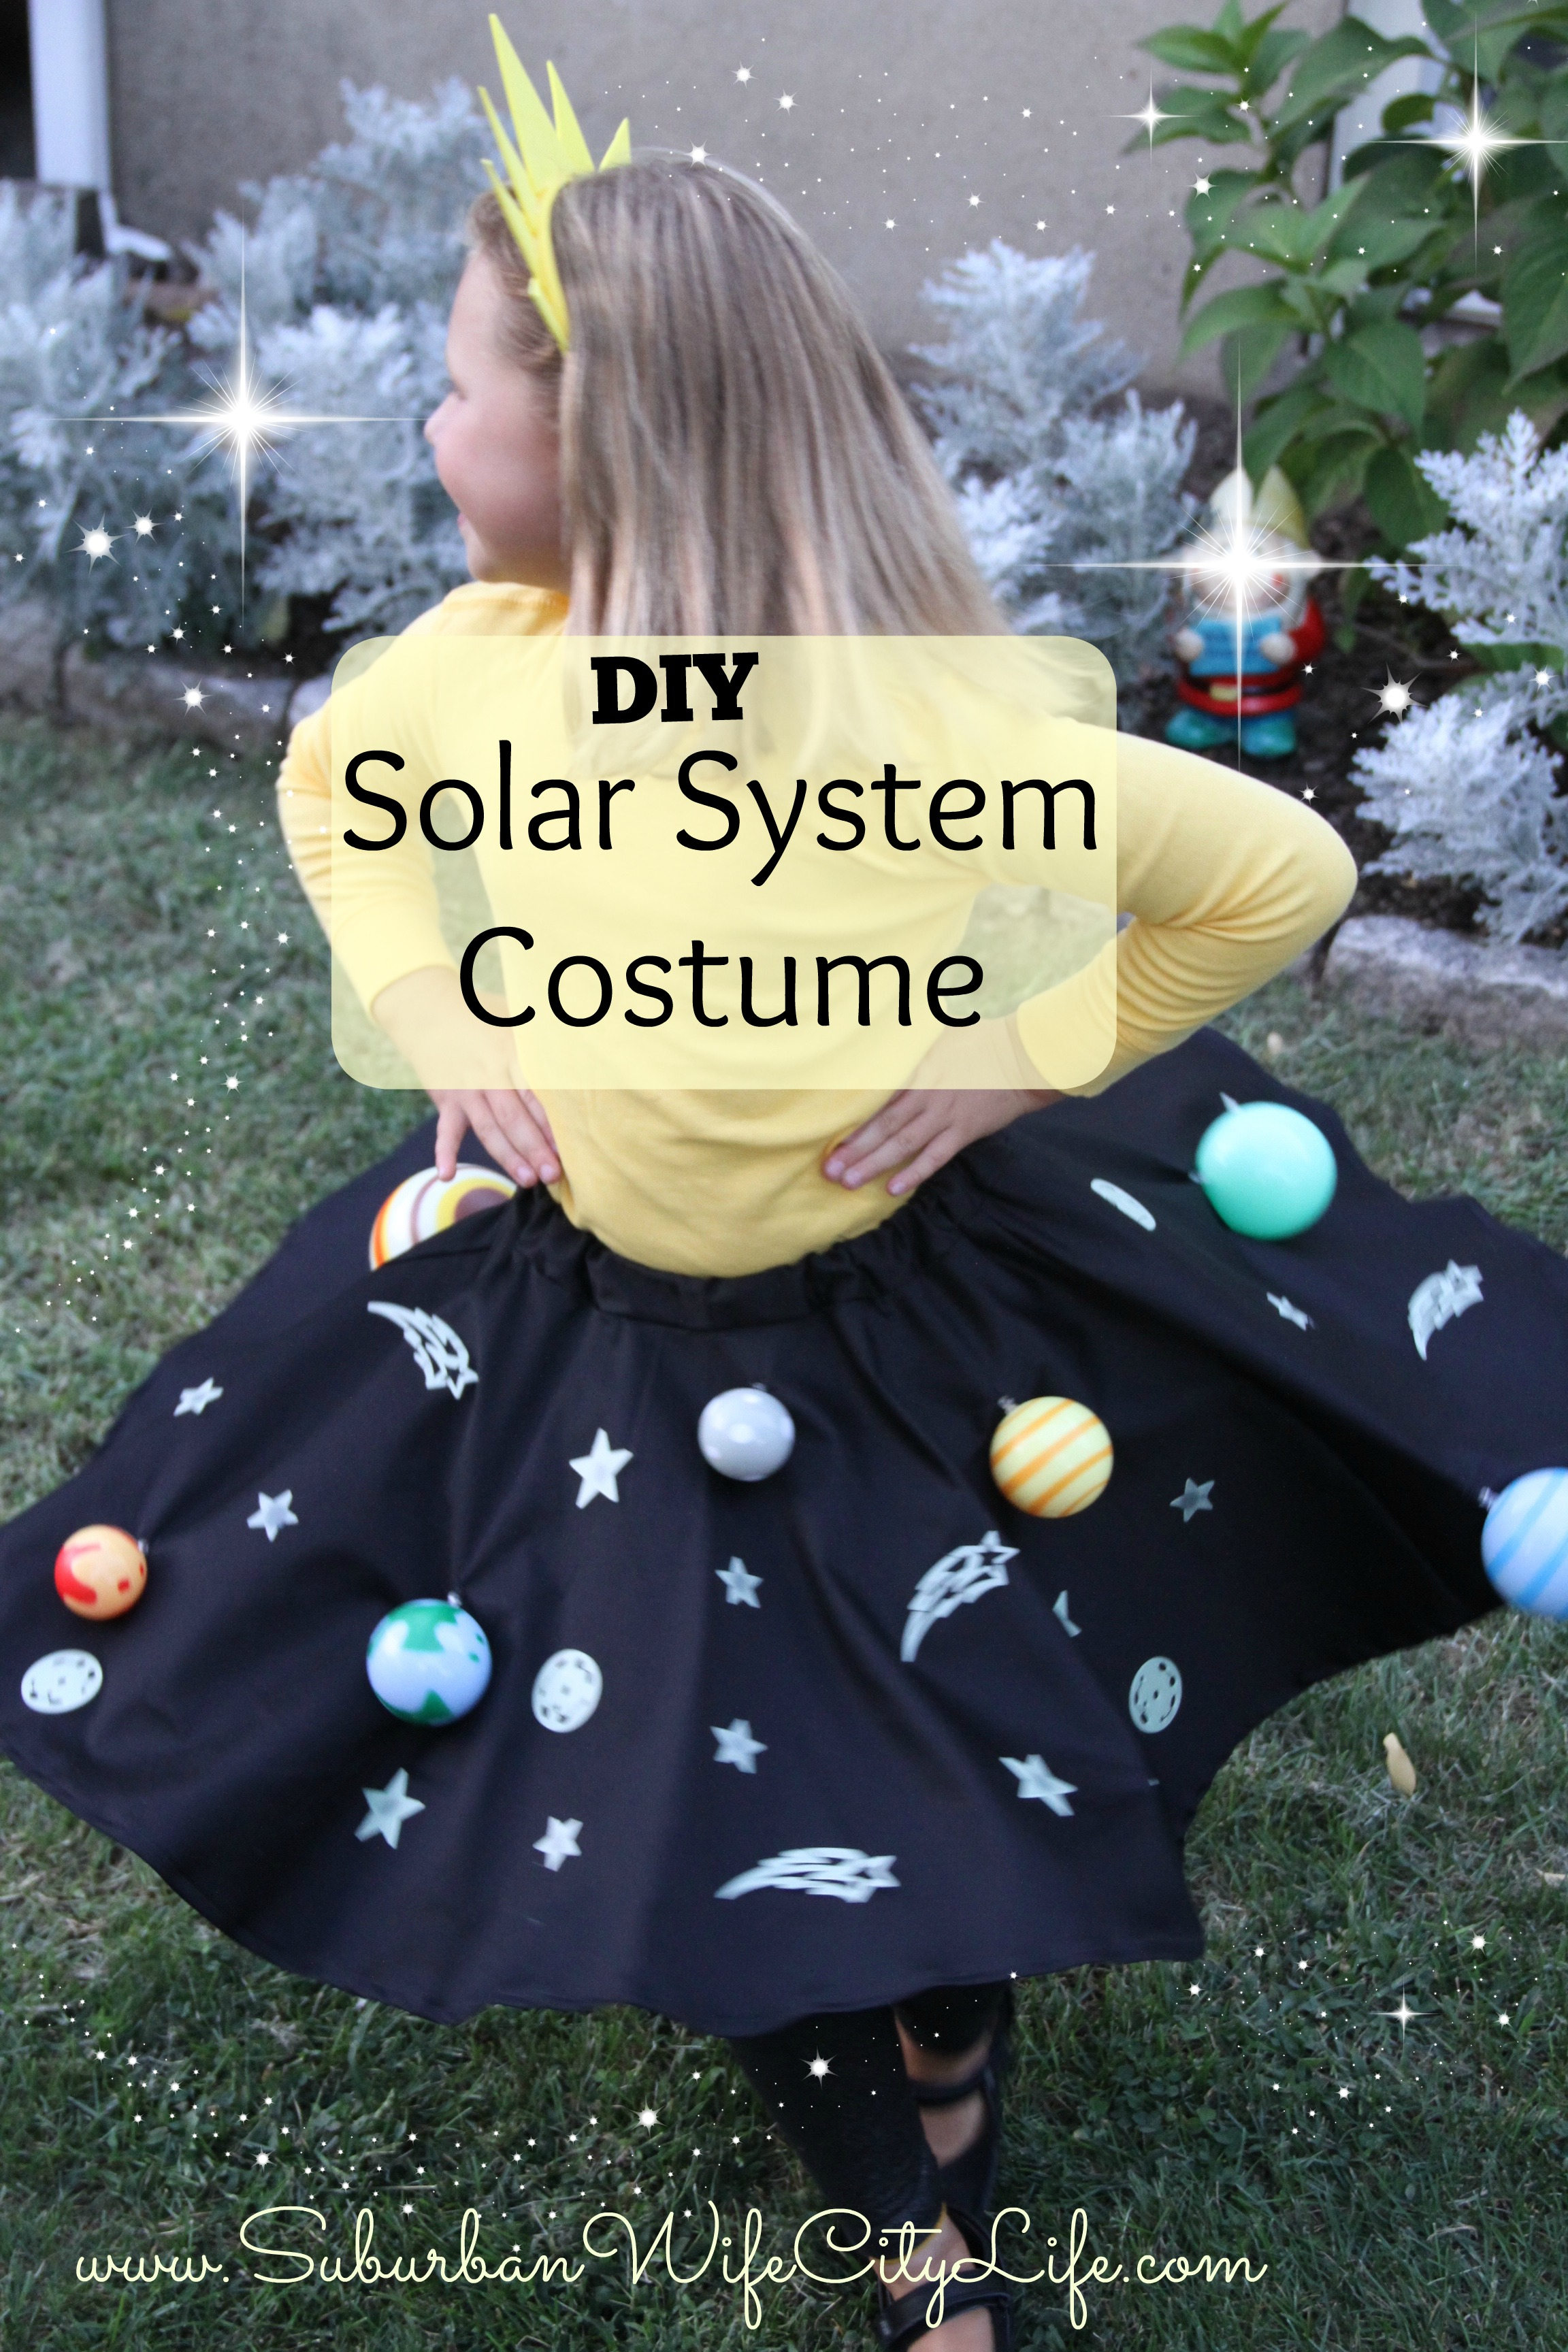 DIY- Solar System Costume | TODAY.com